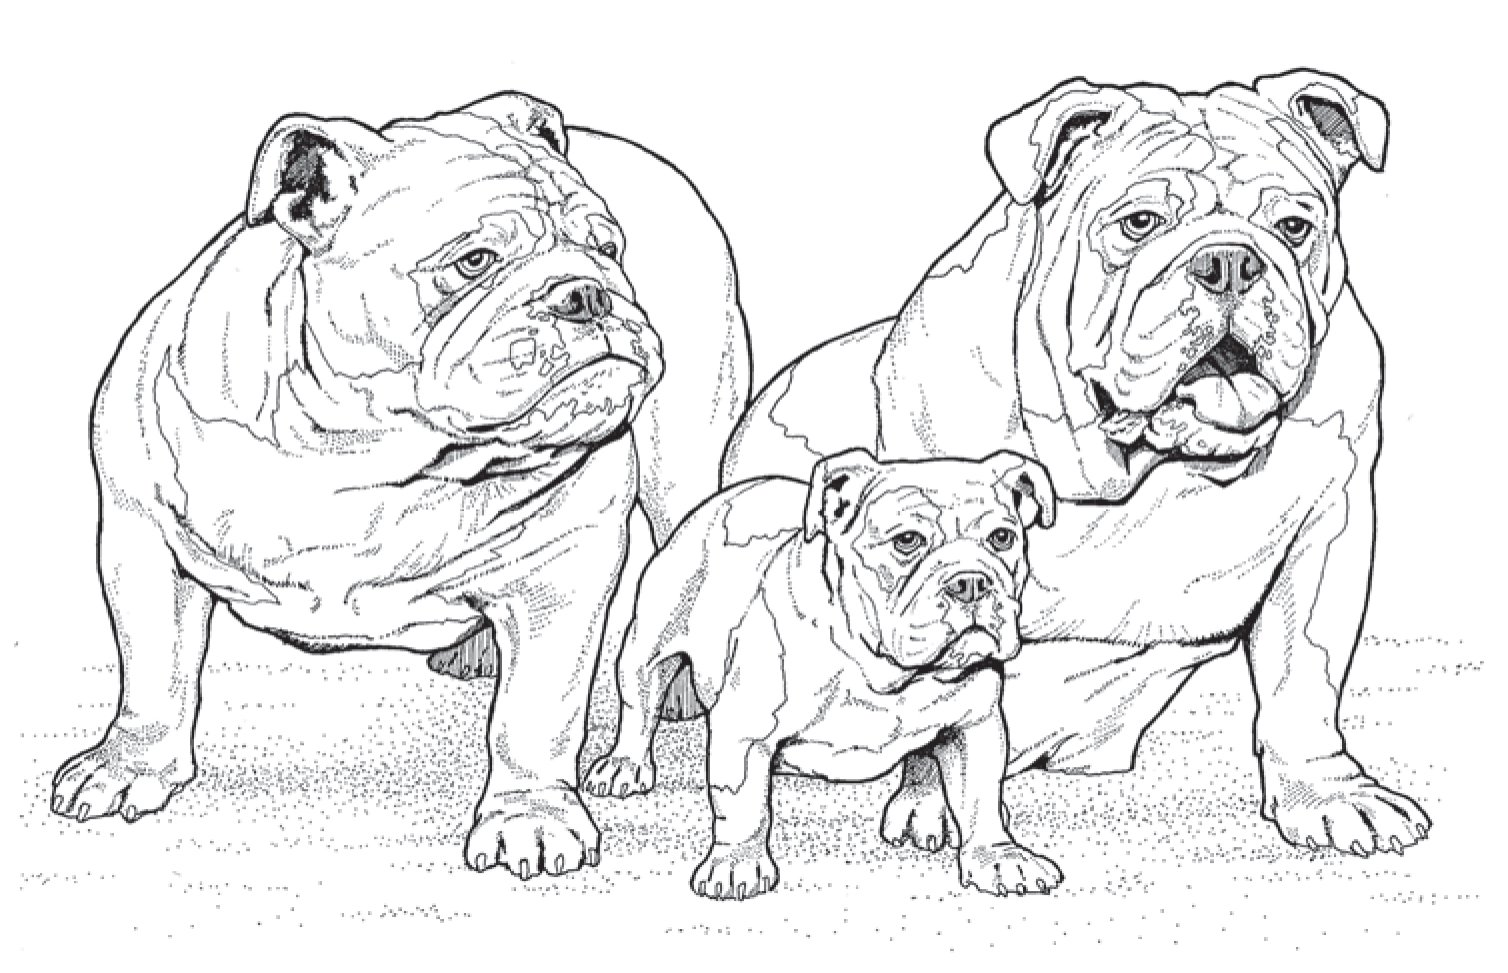 10 New Adult Coloring Books for Dog Lovers to Help Get Your Chill On ...